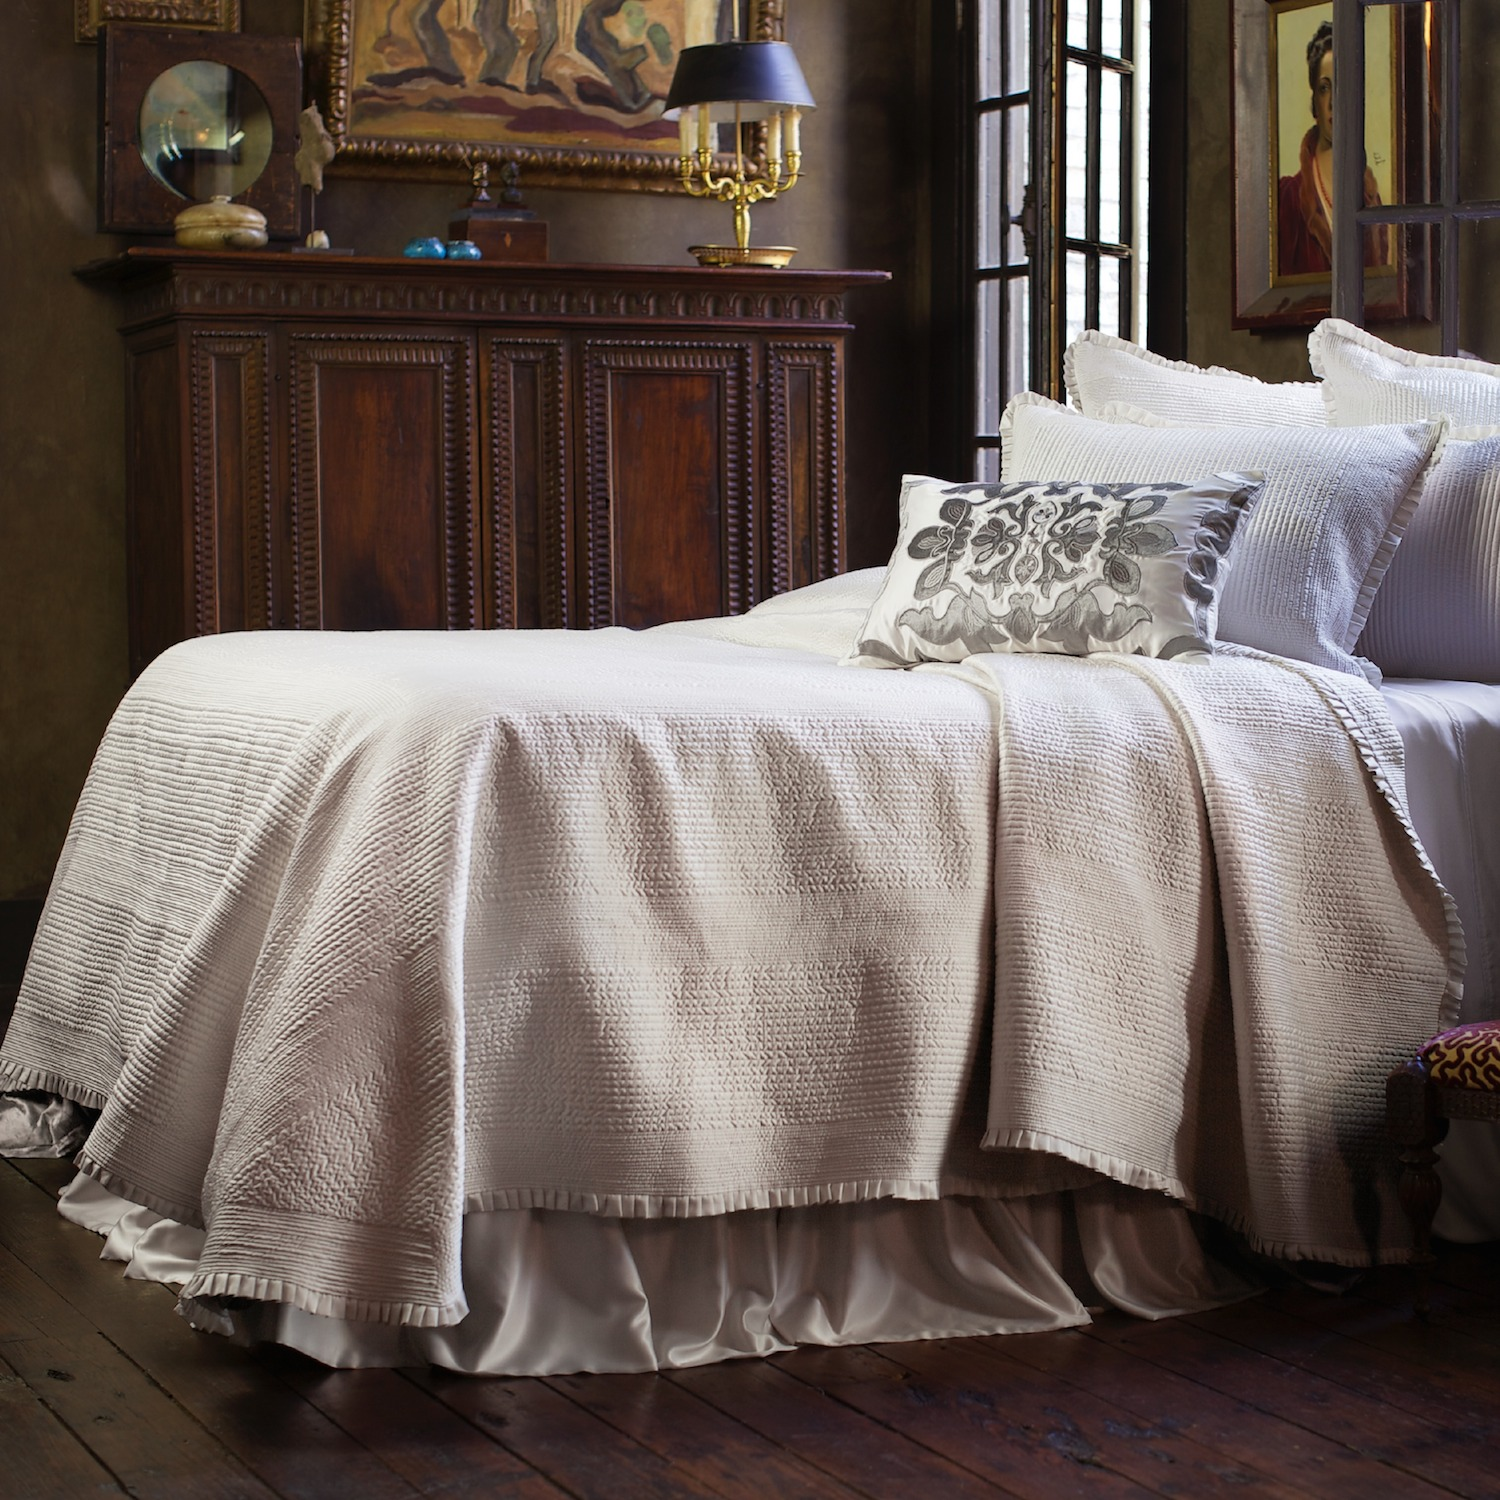 King Bed Spread Lili Alessandra Battersea King Bedspread